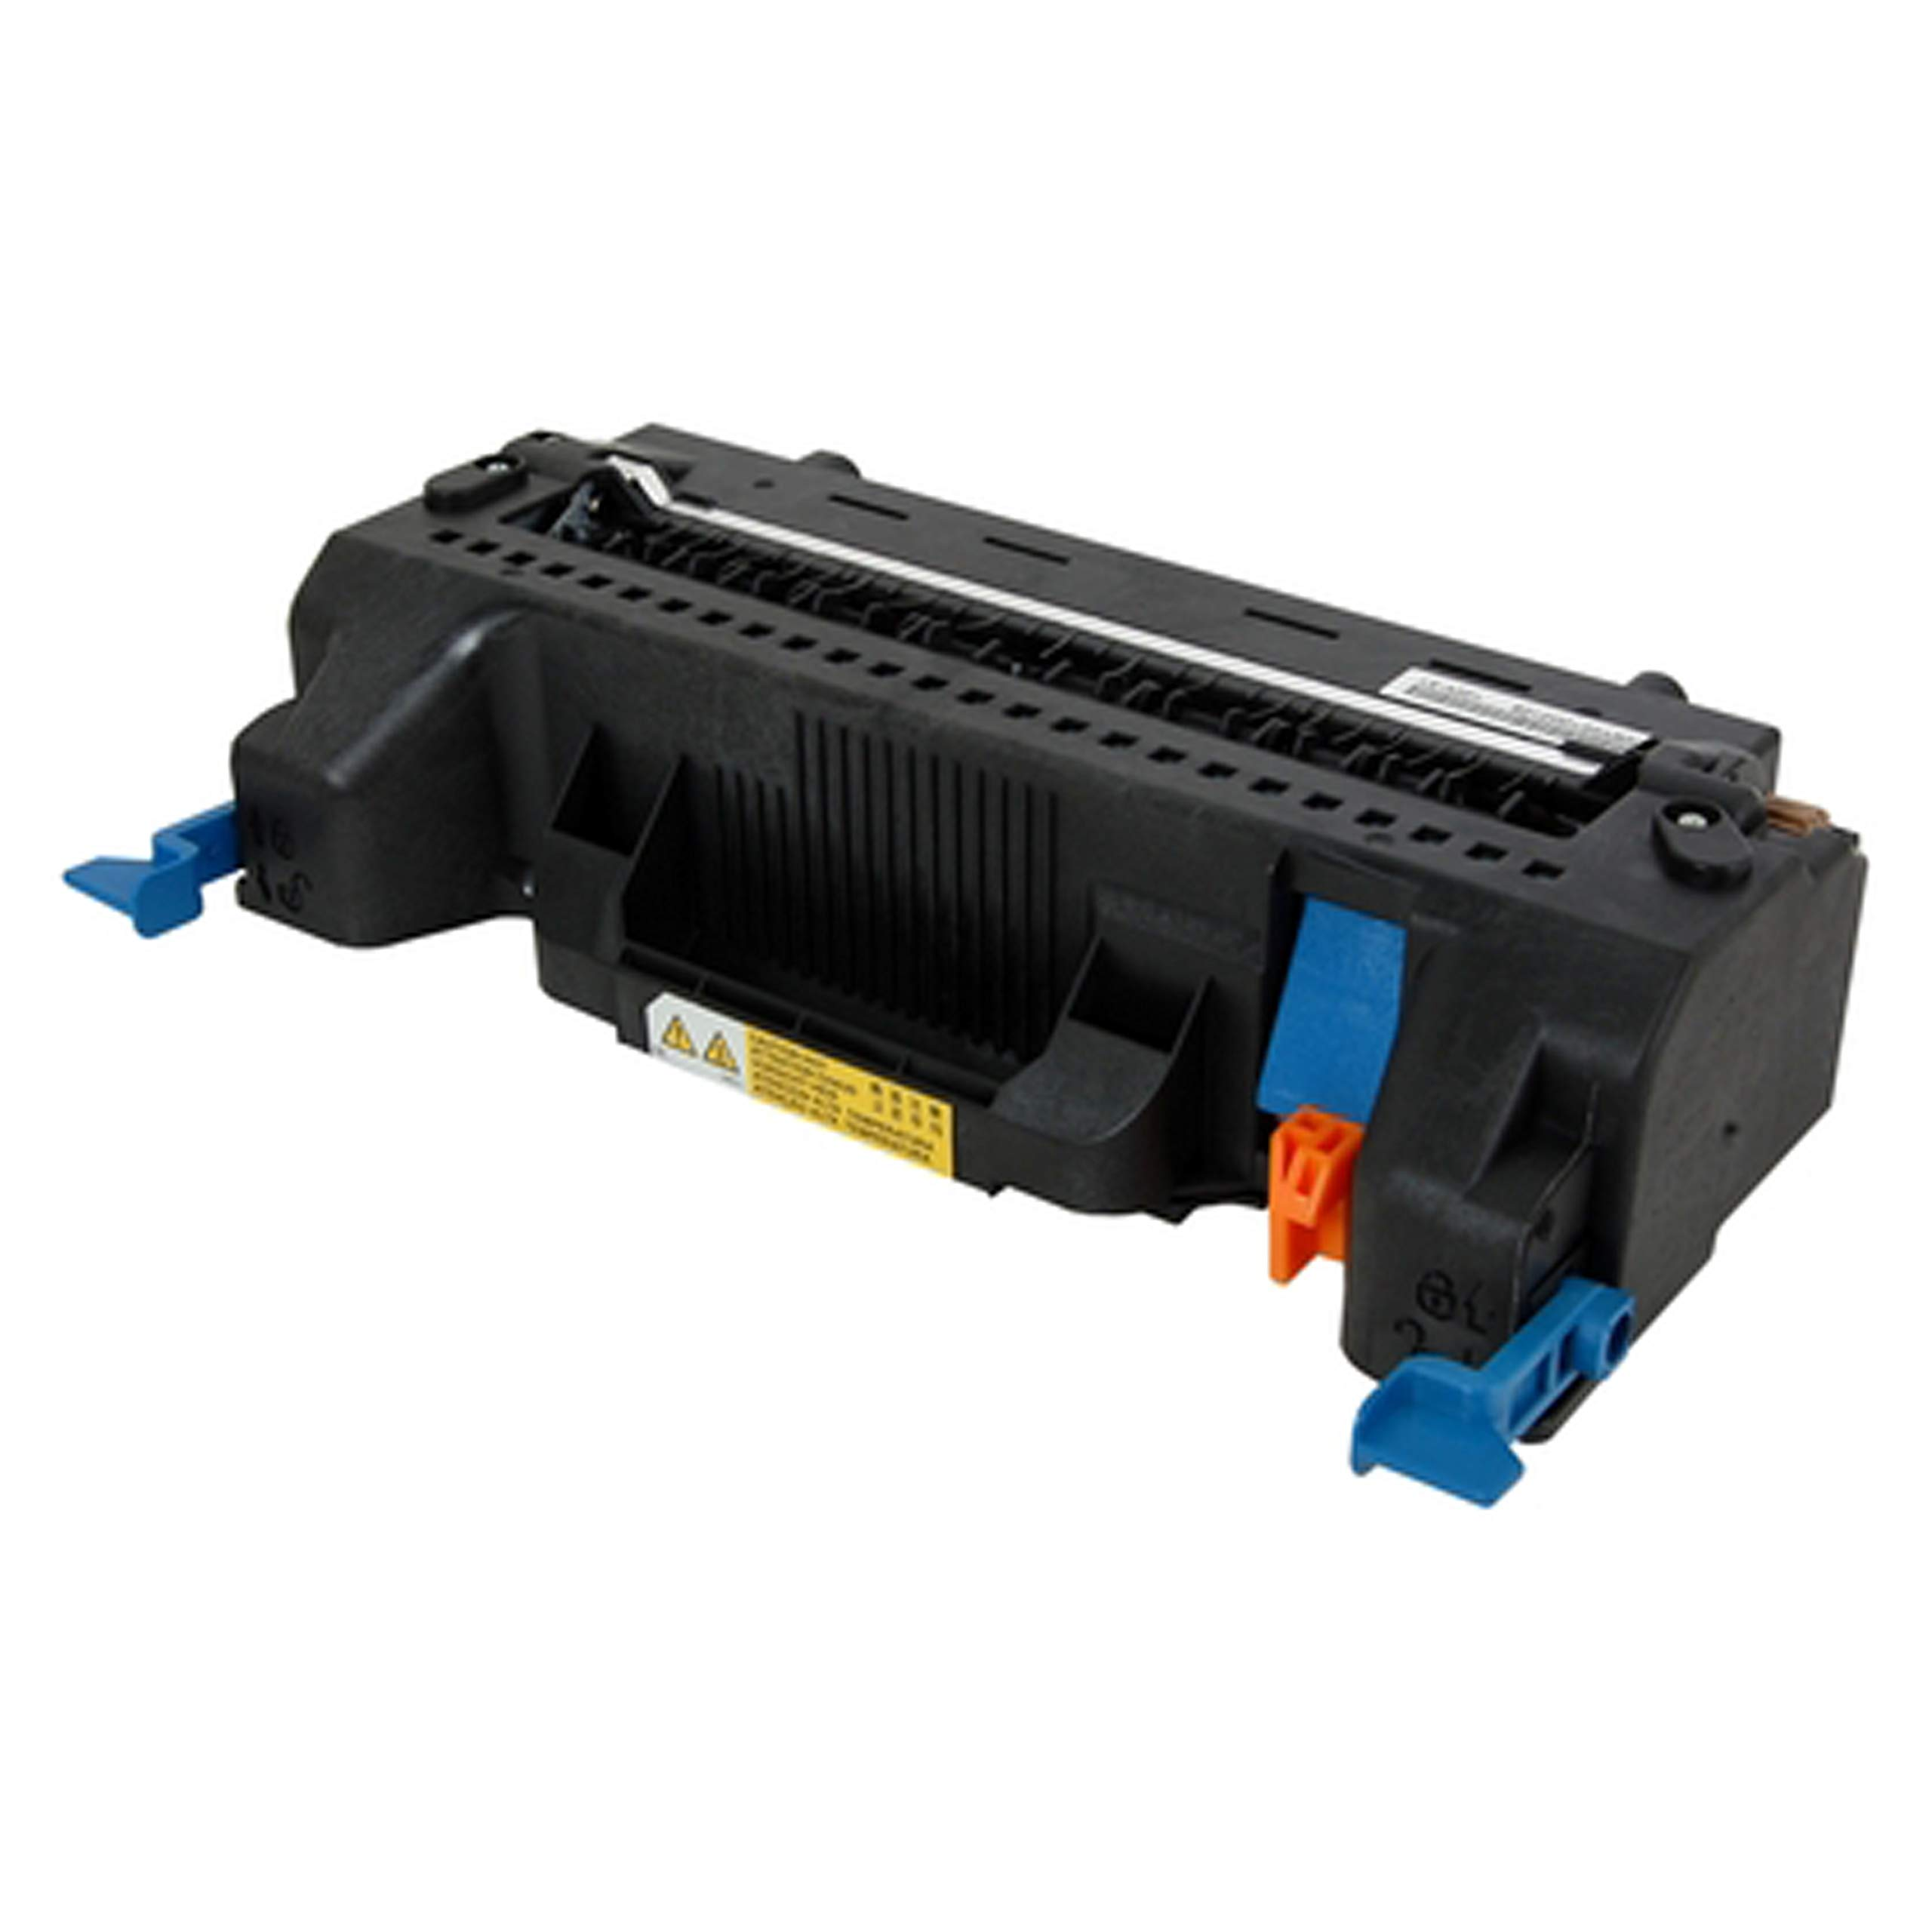 Genuine Fuser Unit for Toshiba E Studio 407CS 347CSL 347CS 287CSL 287CS Part Number 6LK12912000 6LK12908100 FC34-110